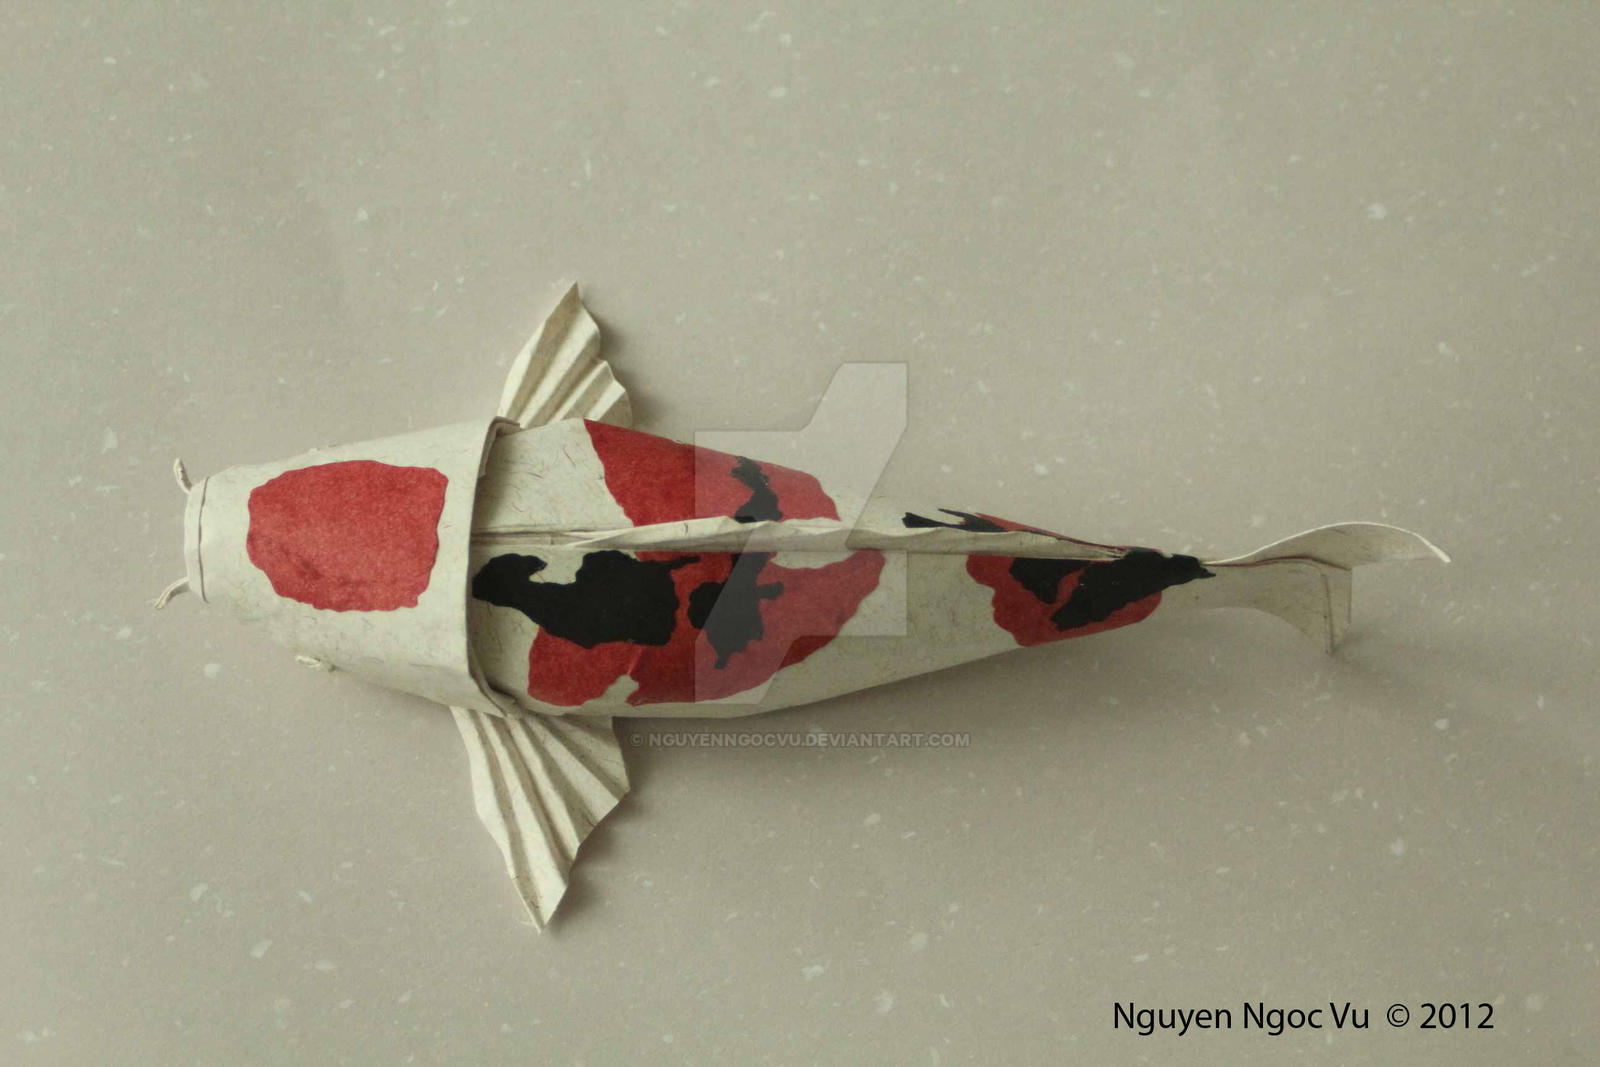 Koi fish by nguyenngocvu on deviantart for Origami koi fish